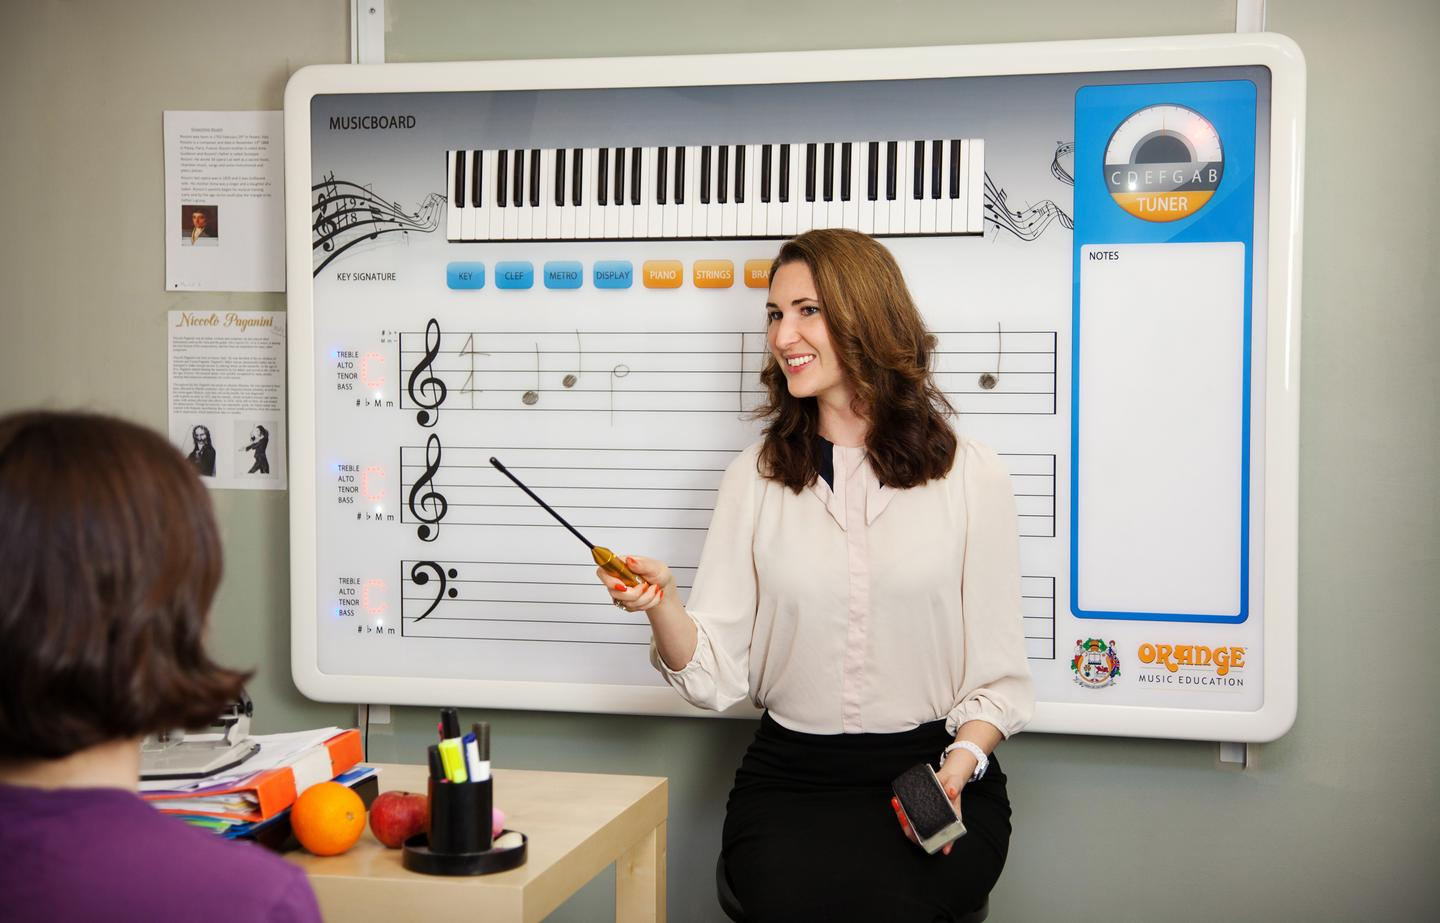 The Musicboard from Orange Music Education